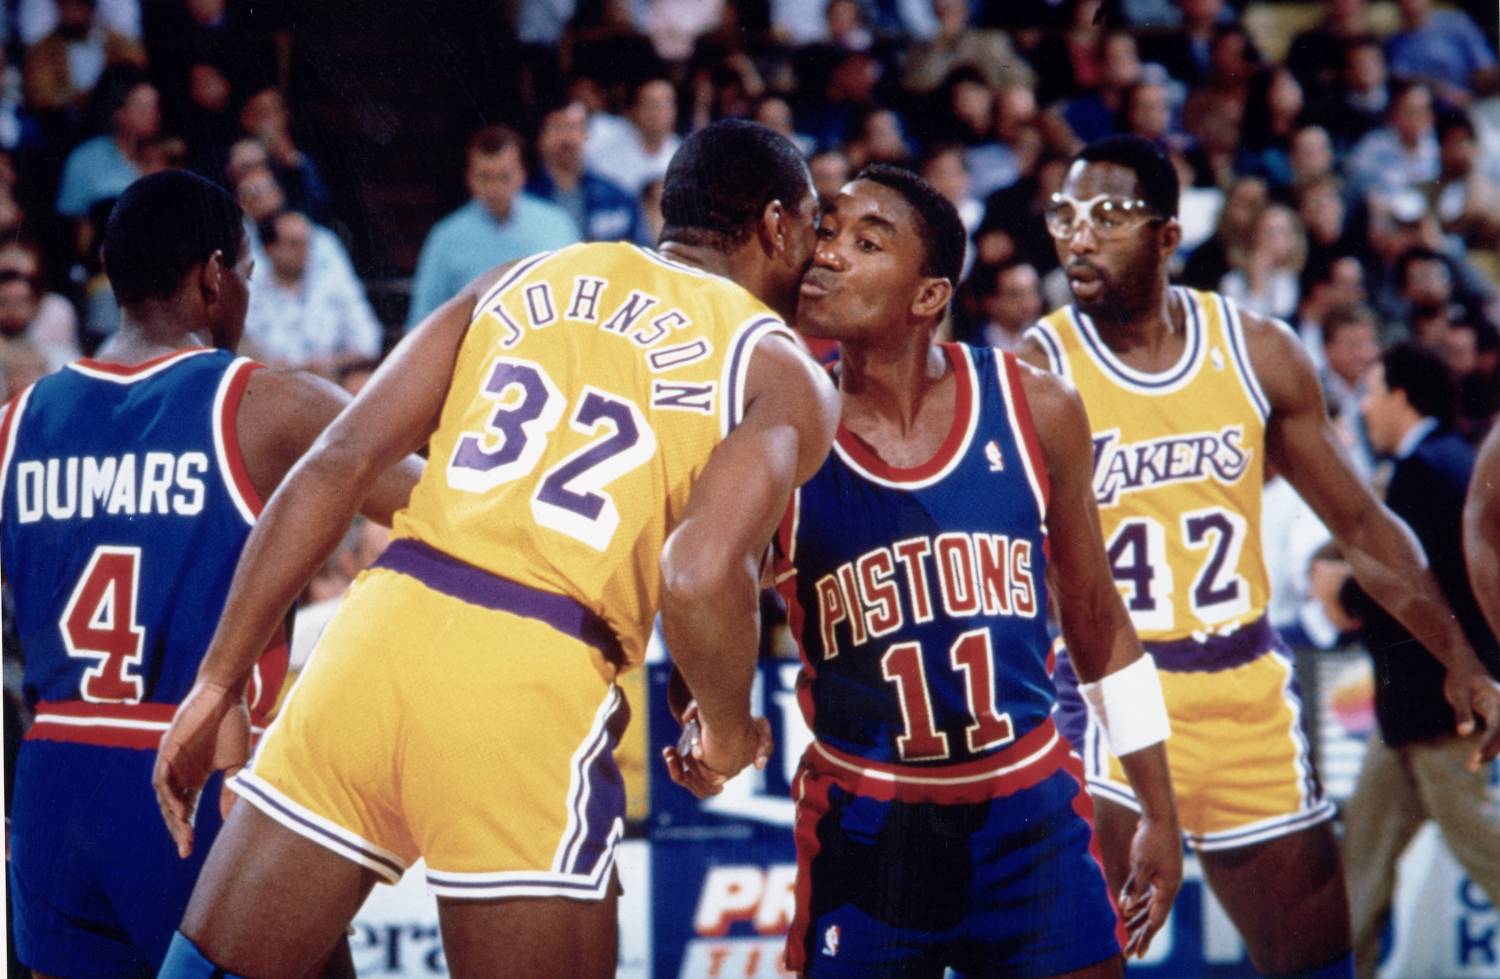 Magic Johnson Isiah Thomas Kiss 1988 - 15 Legendary Shots in NBA Finals History